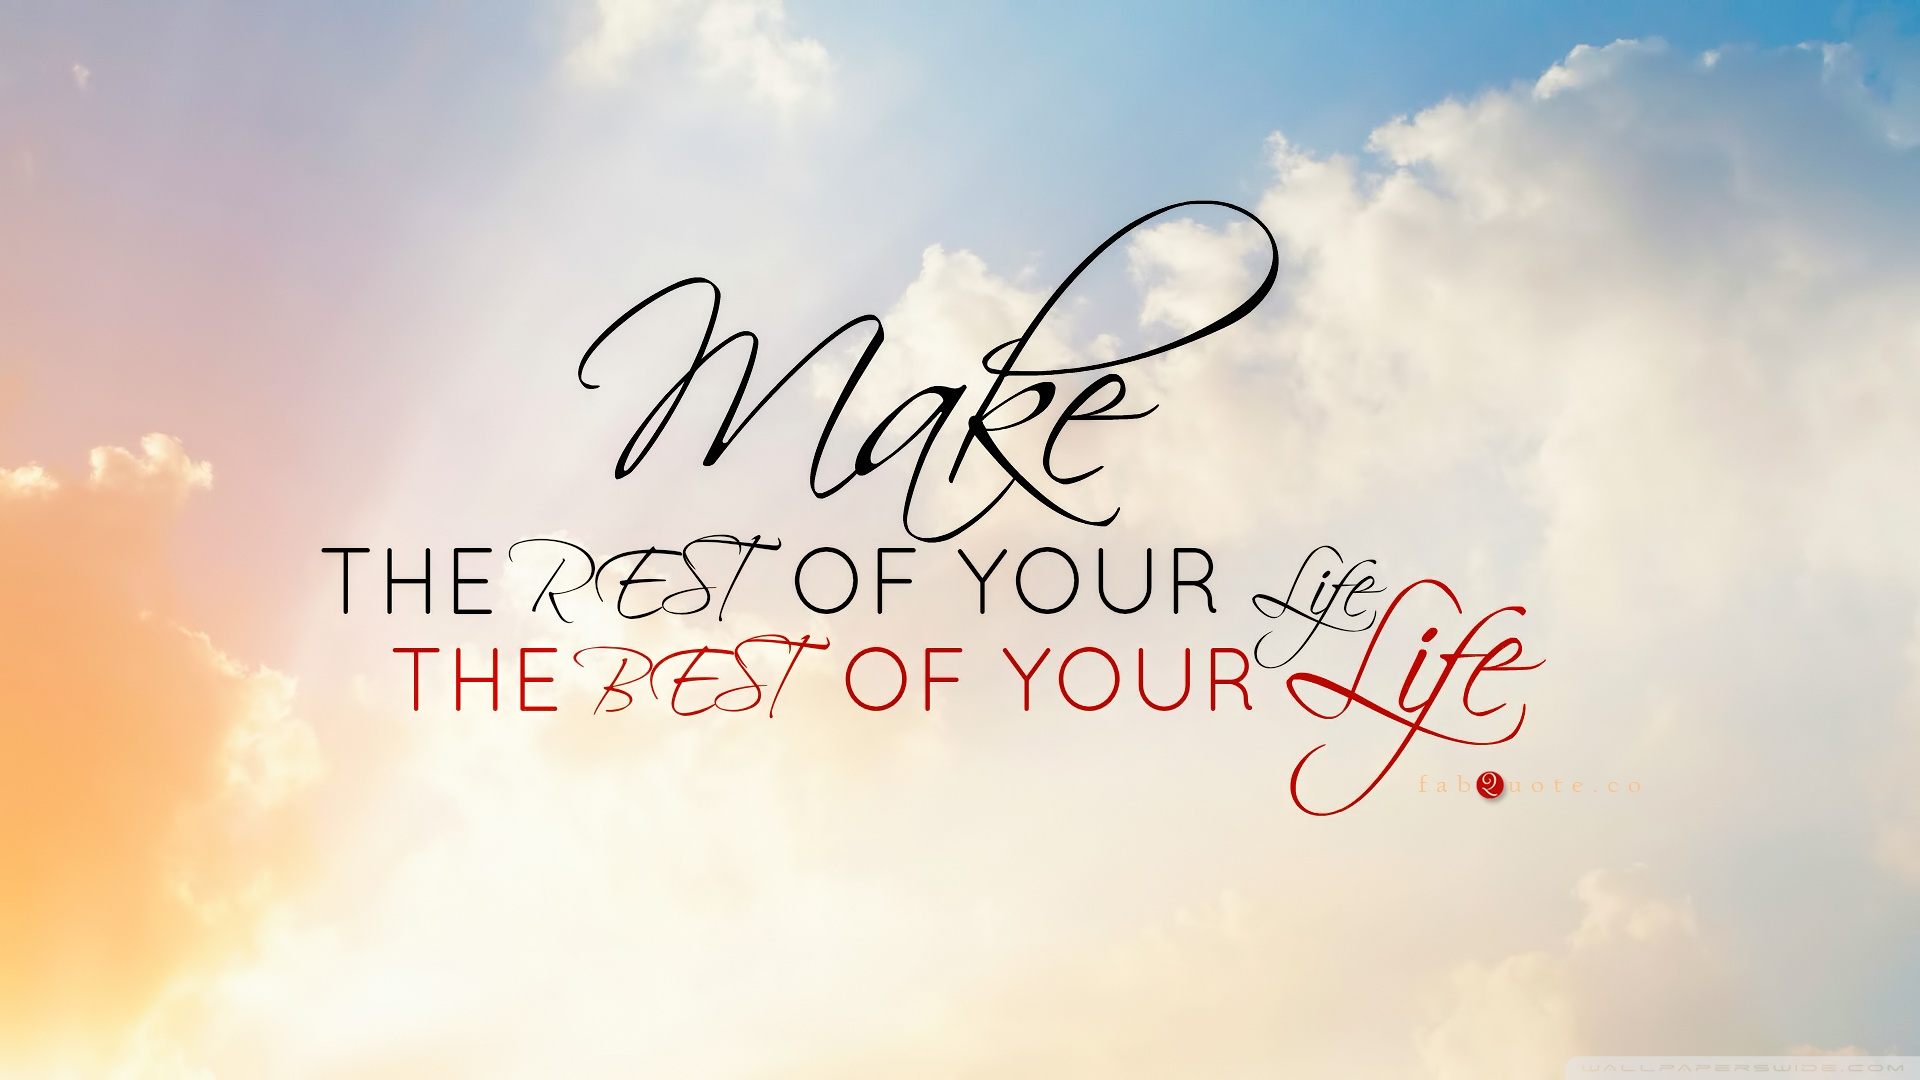 Make The Rest Of Your Life, The Best Of Your Life Hd - Make The Rest Of Your Life The Best Of Your Life - HD Wallpaper